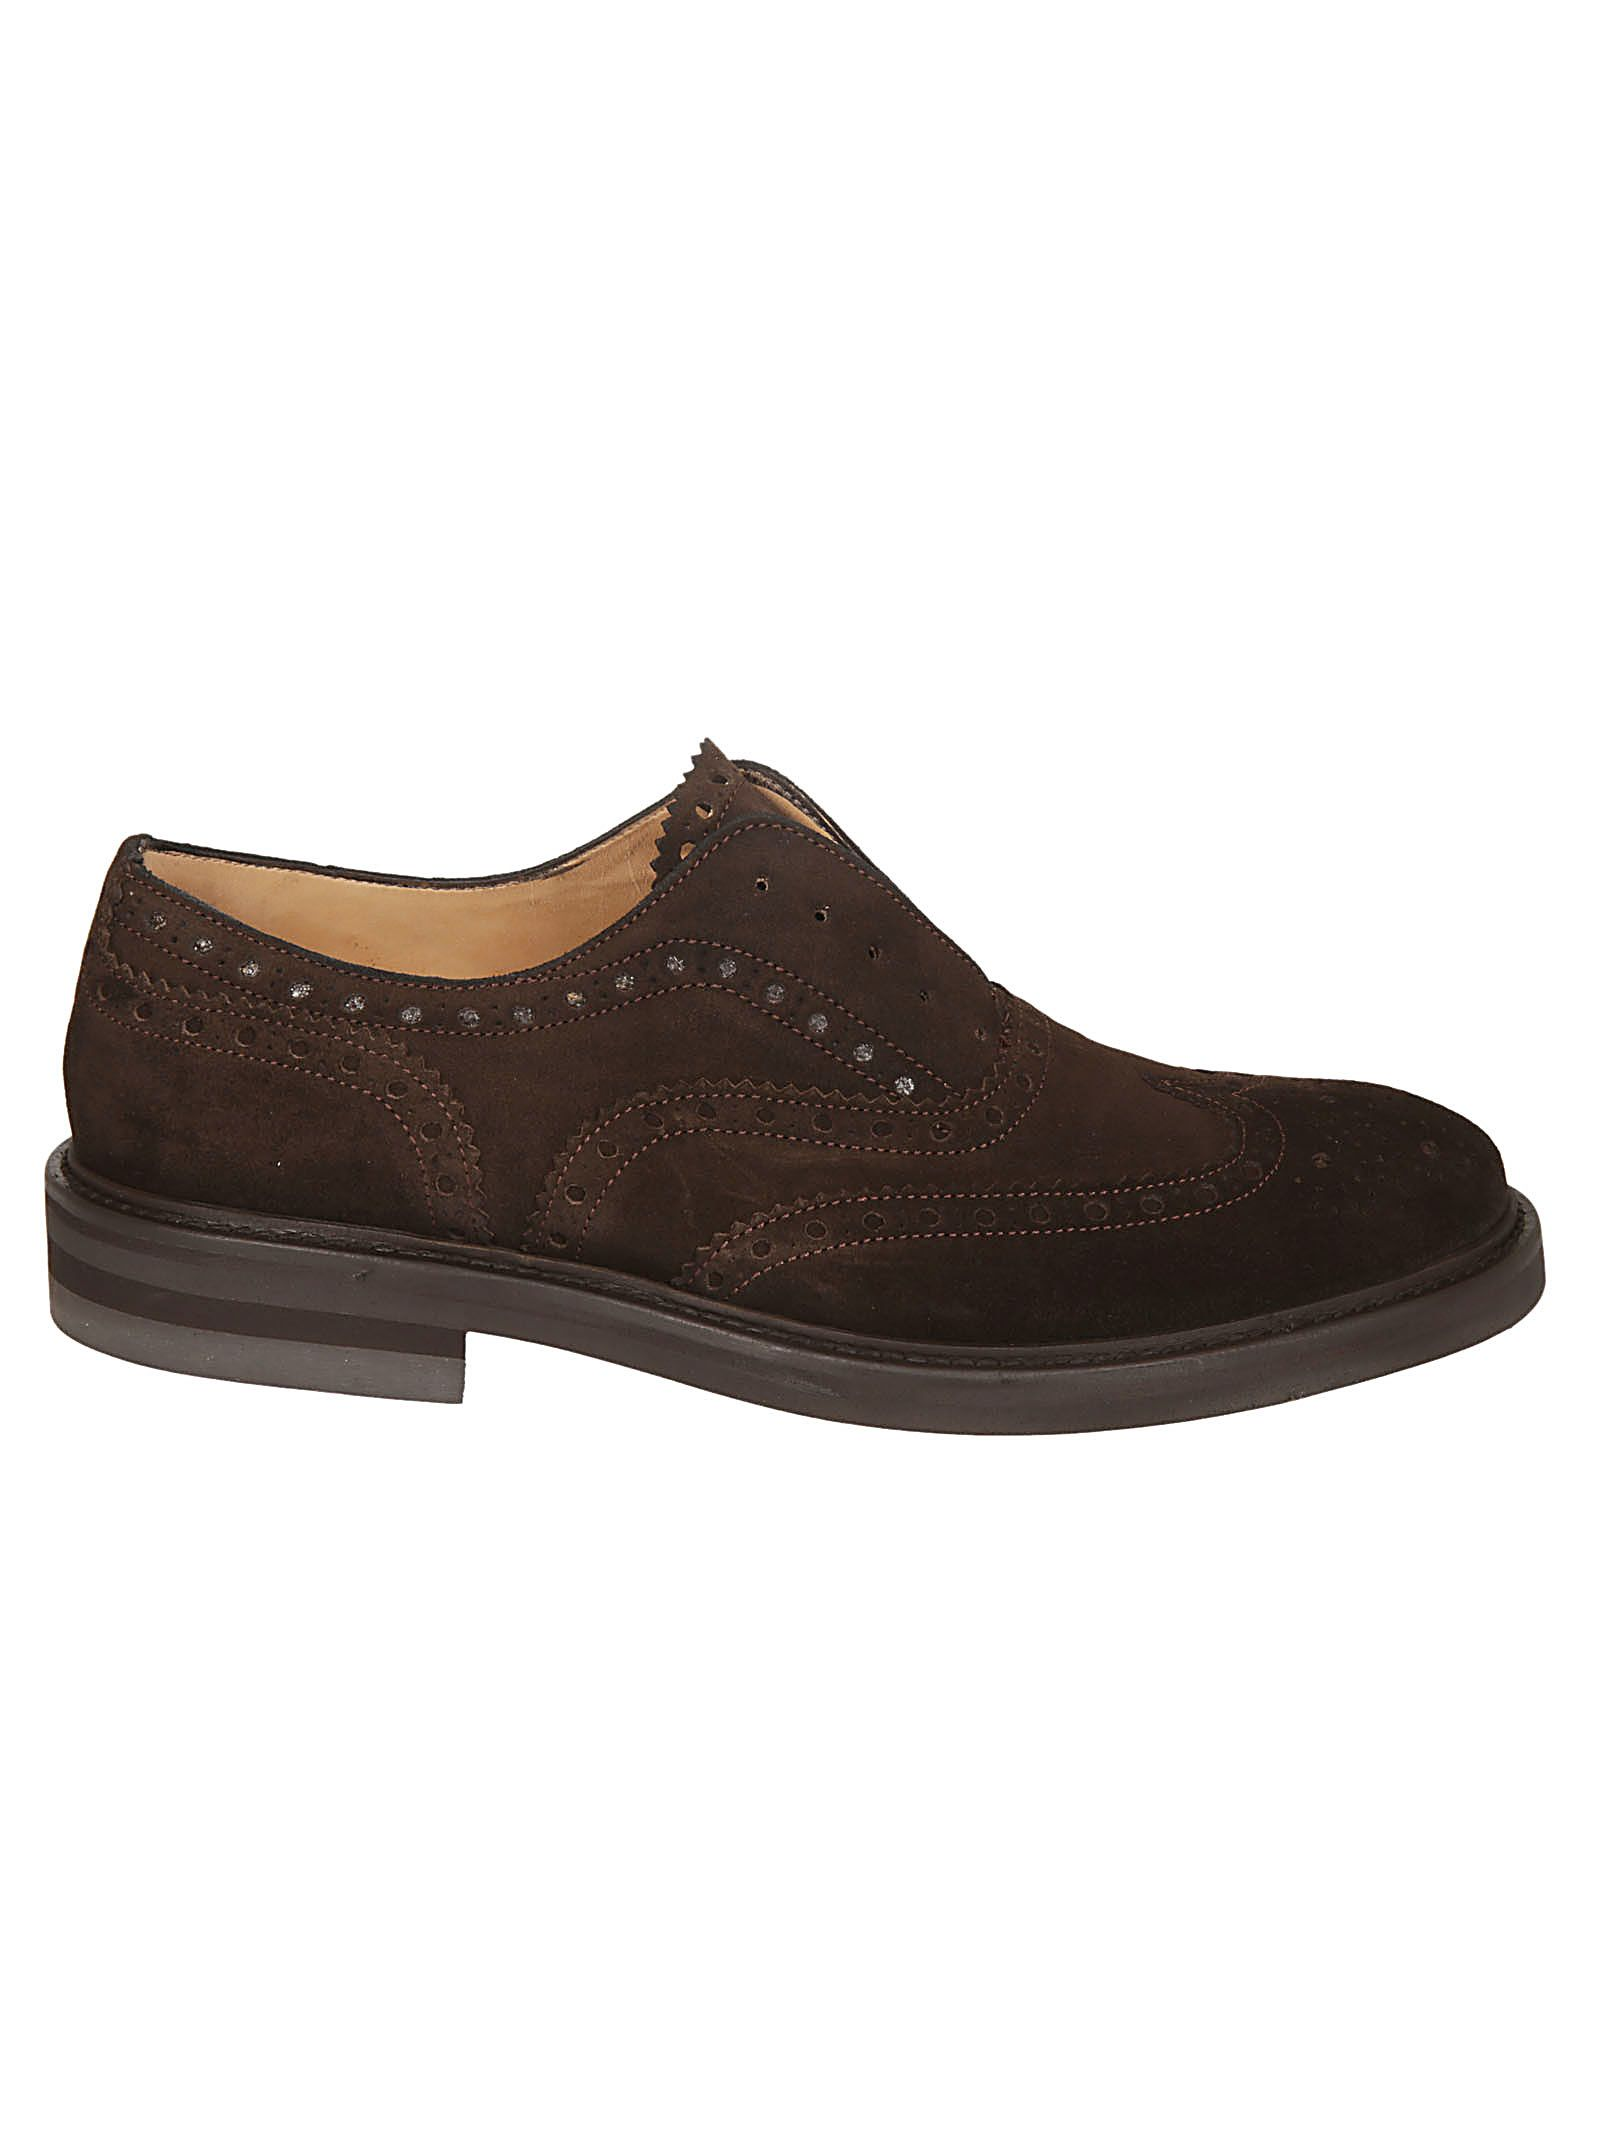 SEBOY'S Perforated Oxford Shoes in Moro